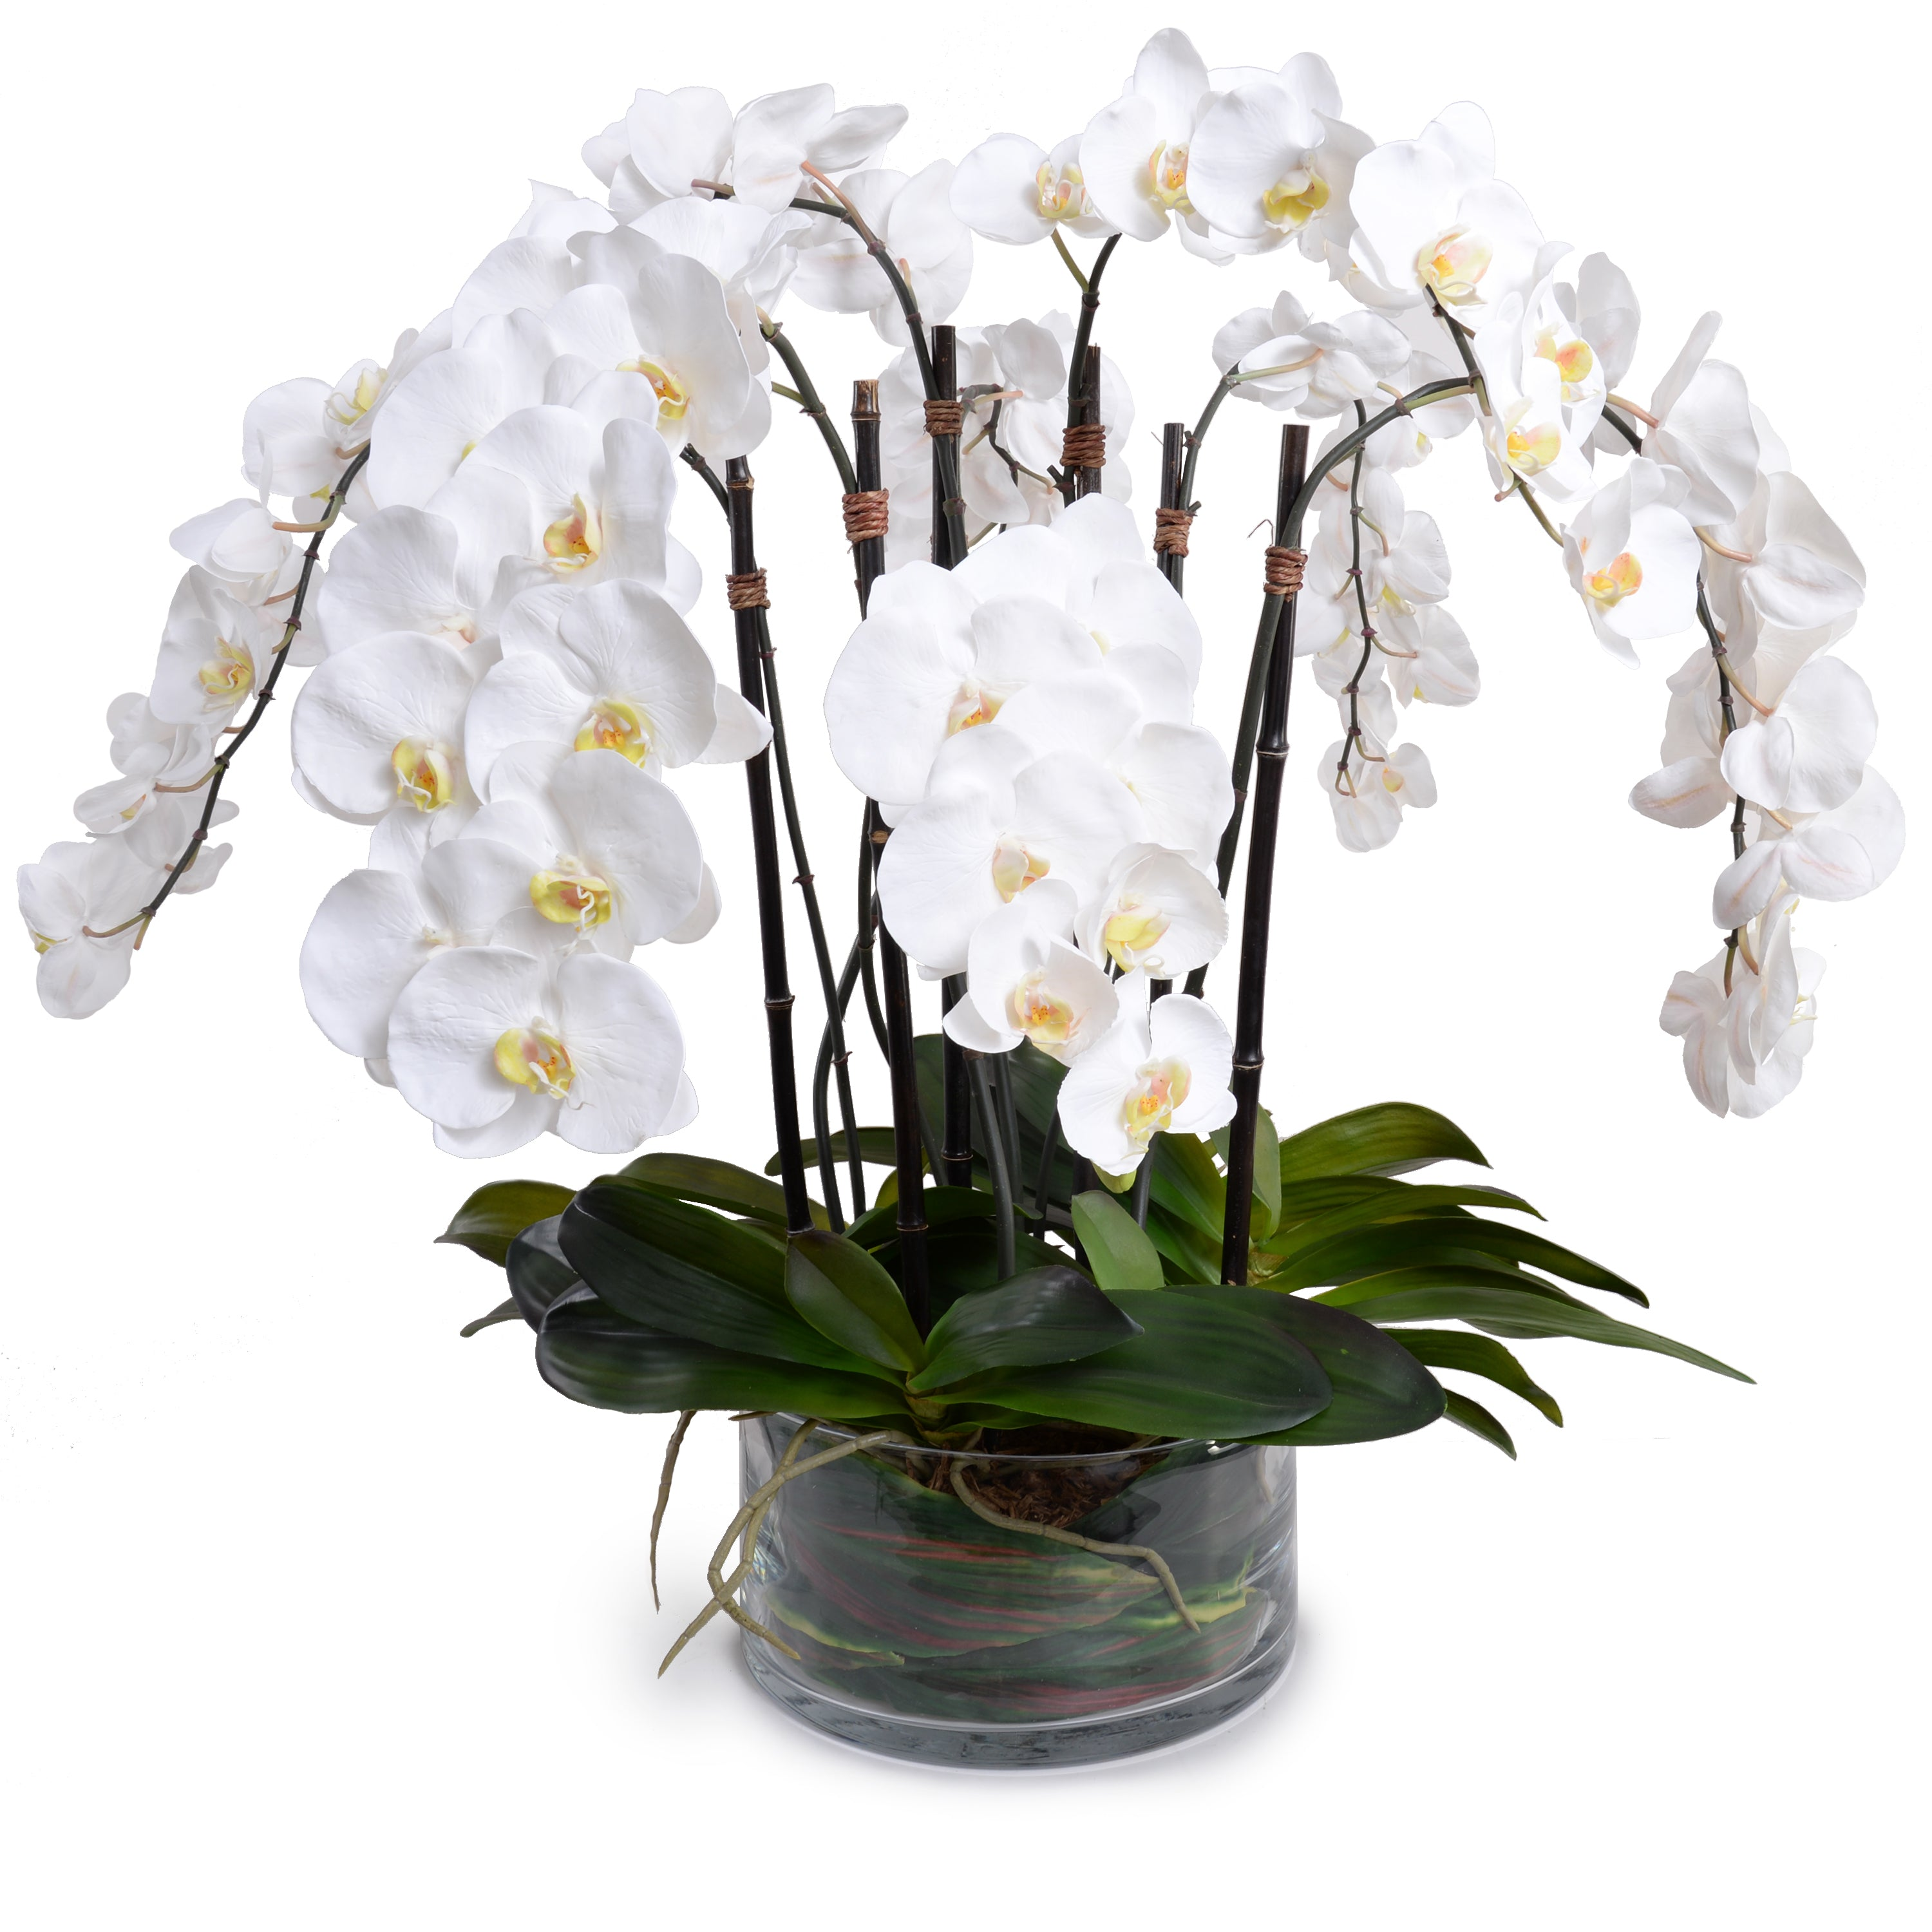 Phalaenopsis Orchid x8 Leaf It - White